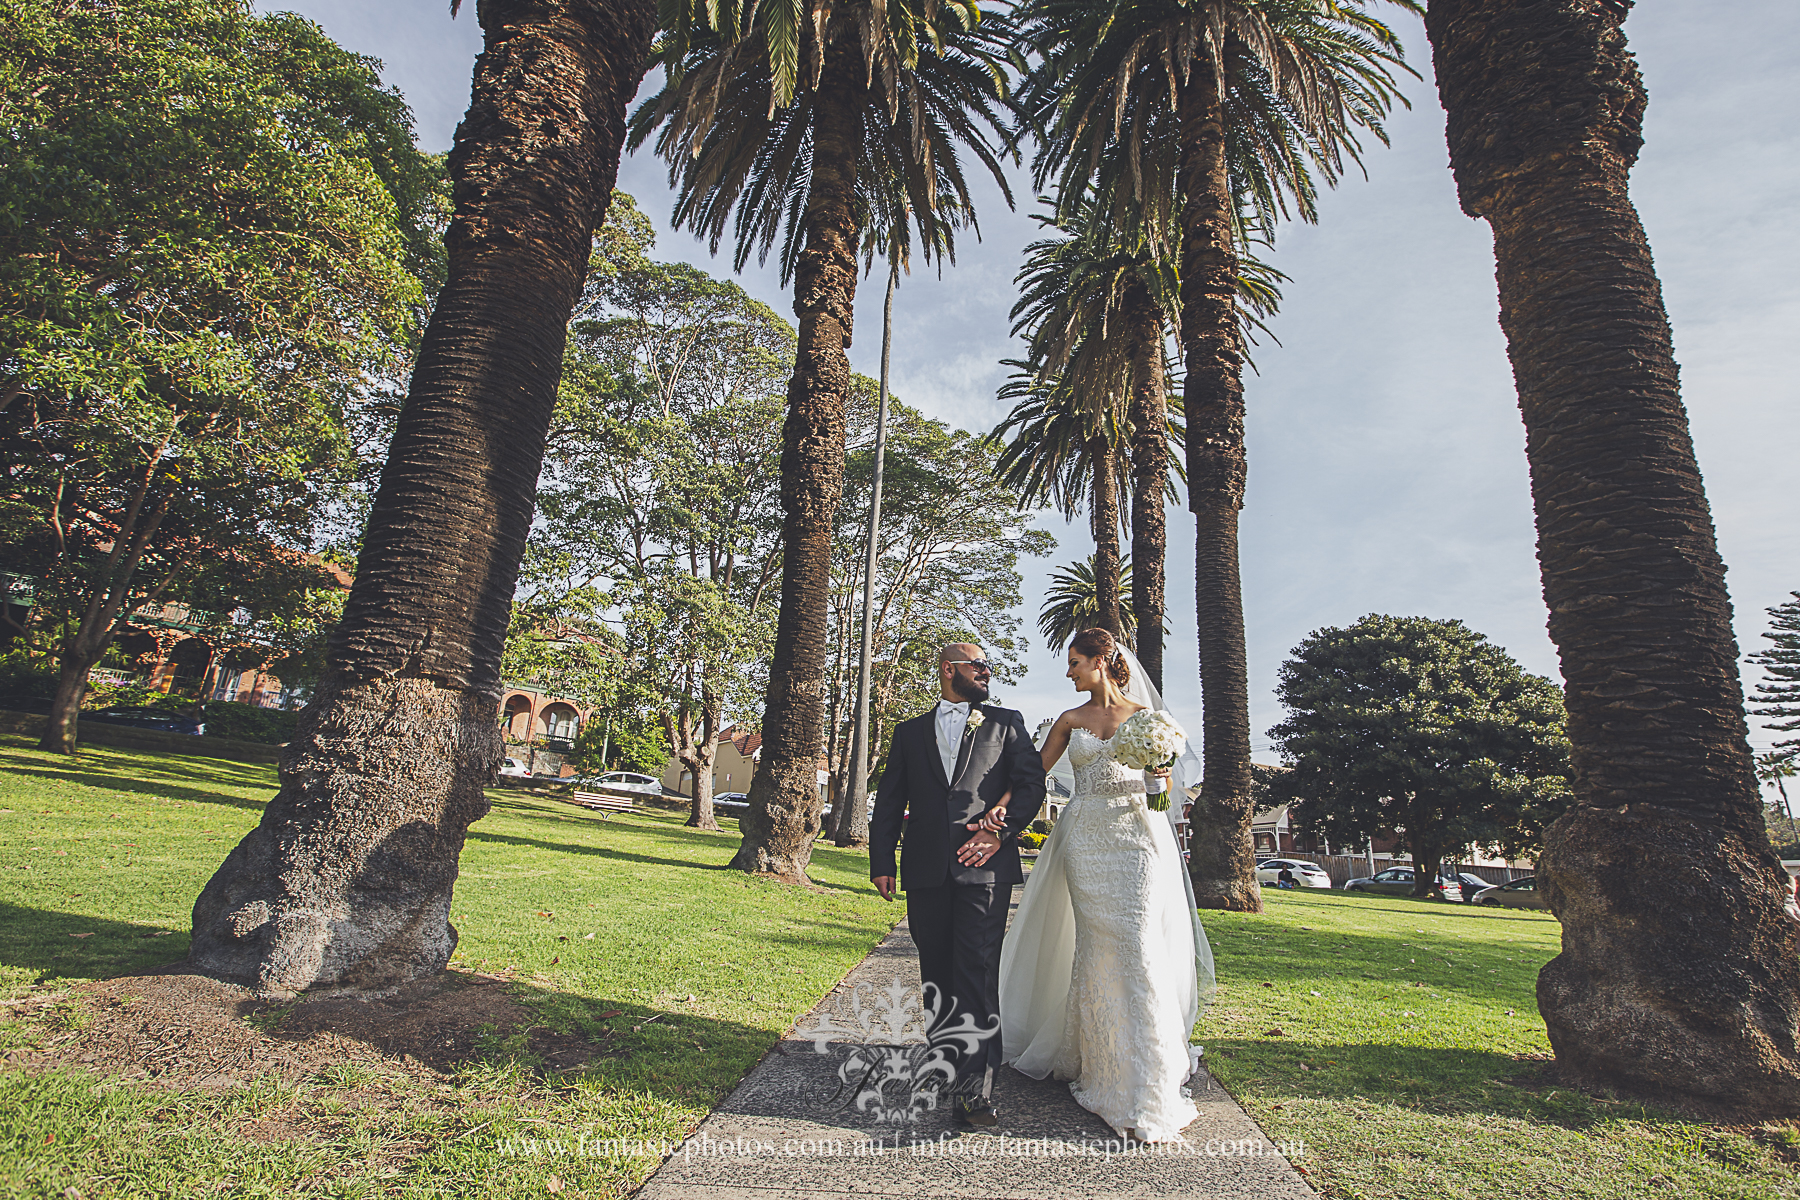 Wedding Photography Balmain | Fantasie Photography